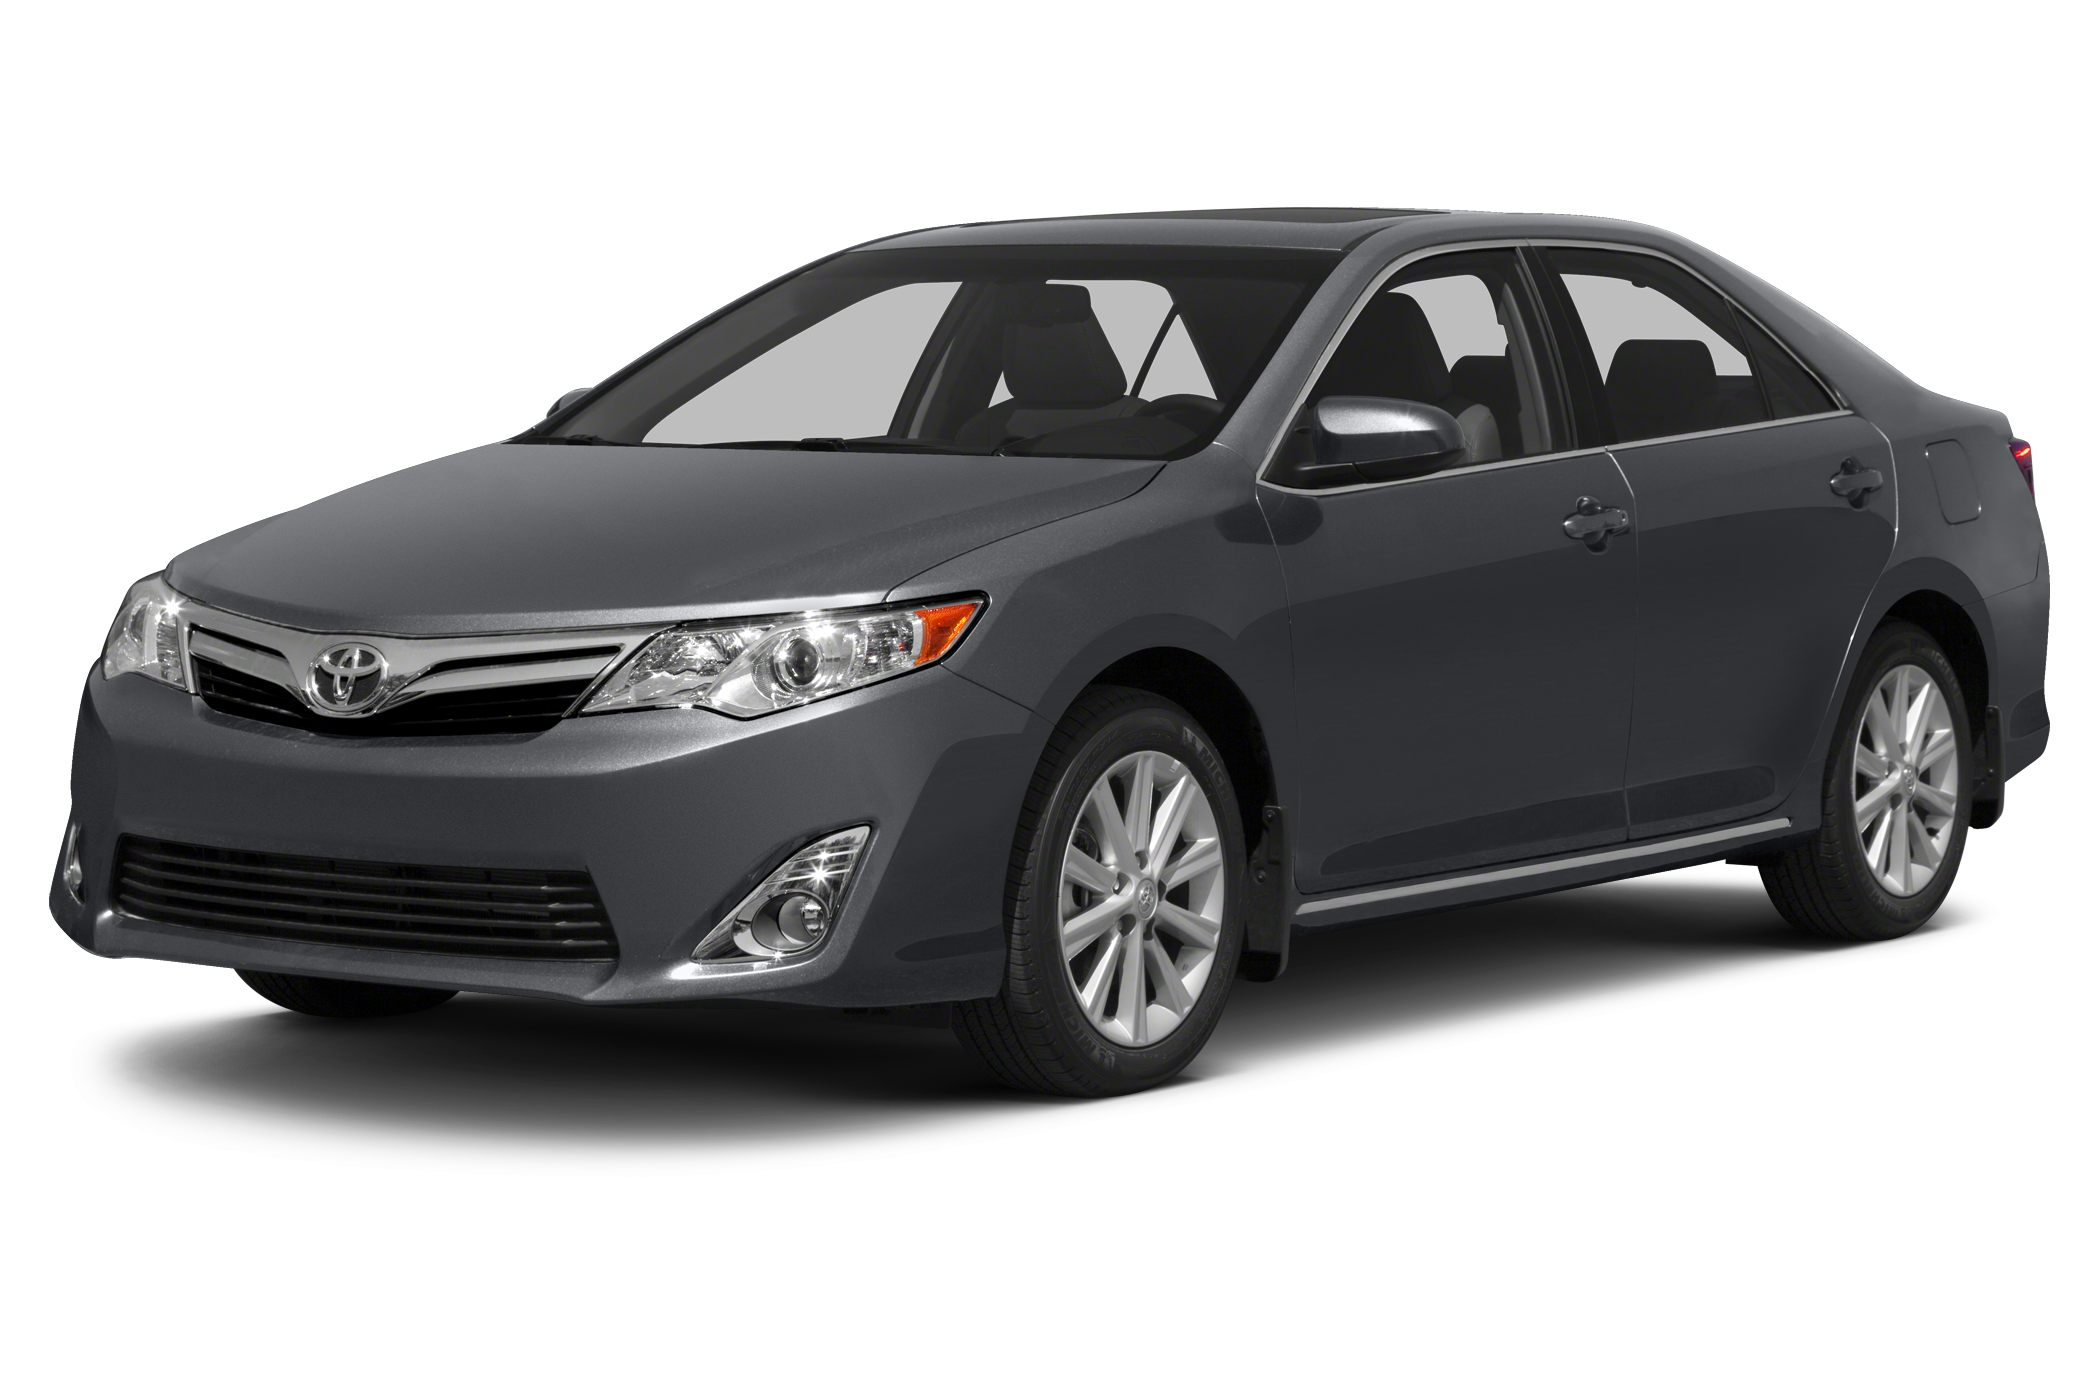 2014 Toyota Camry L Sedan for sale in Smyrna for $19,900 with 3,770 miles.